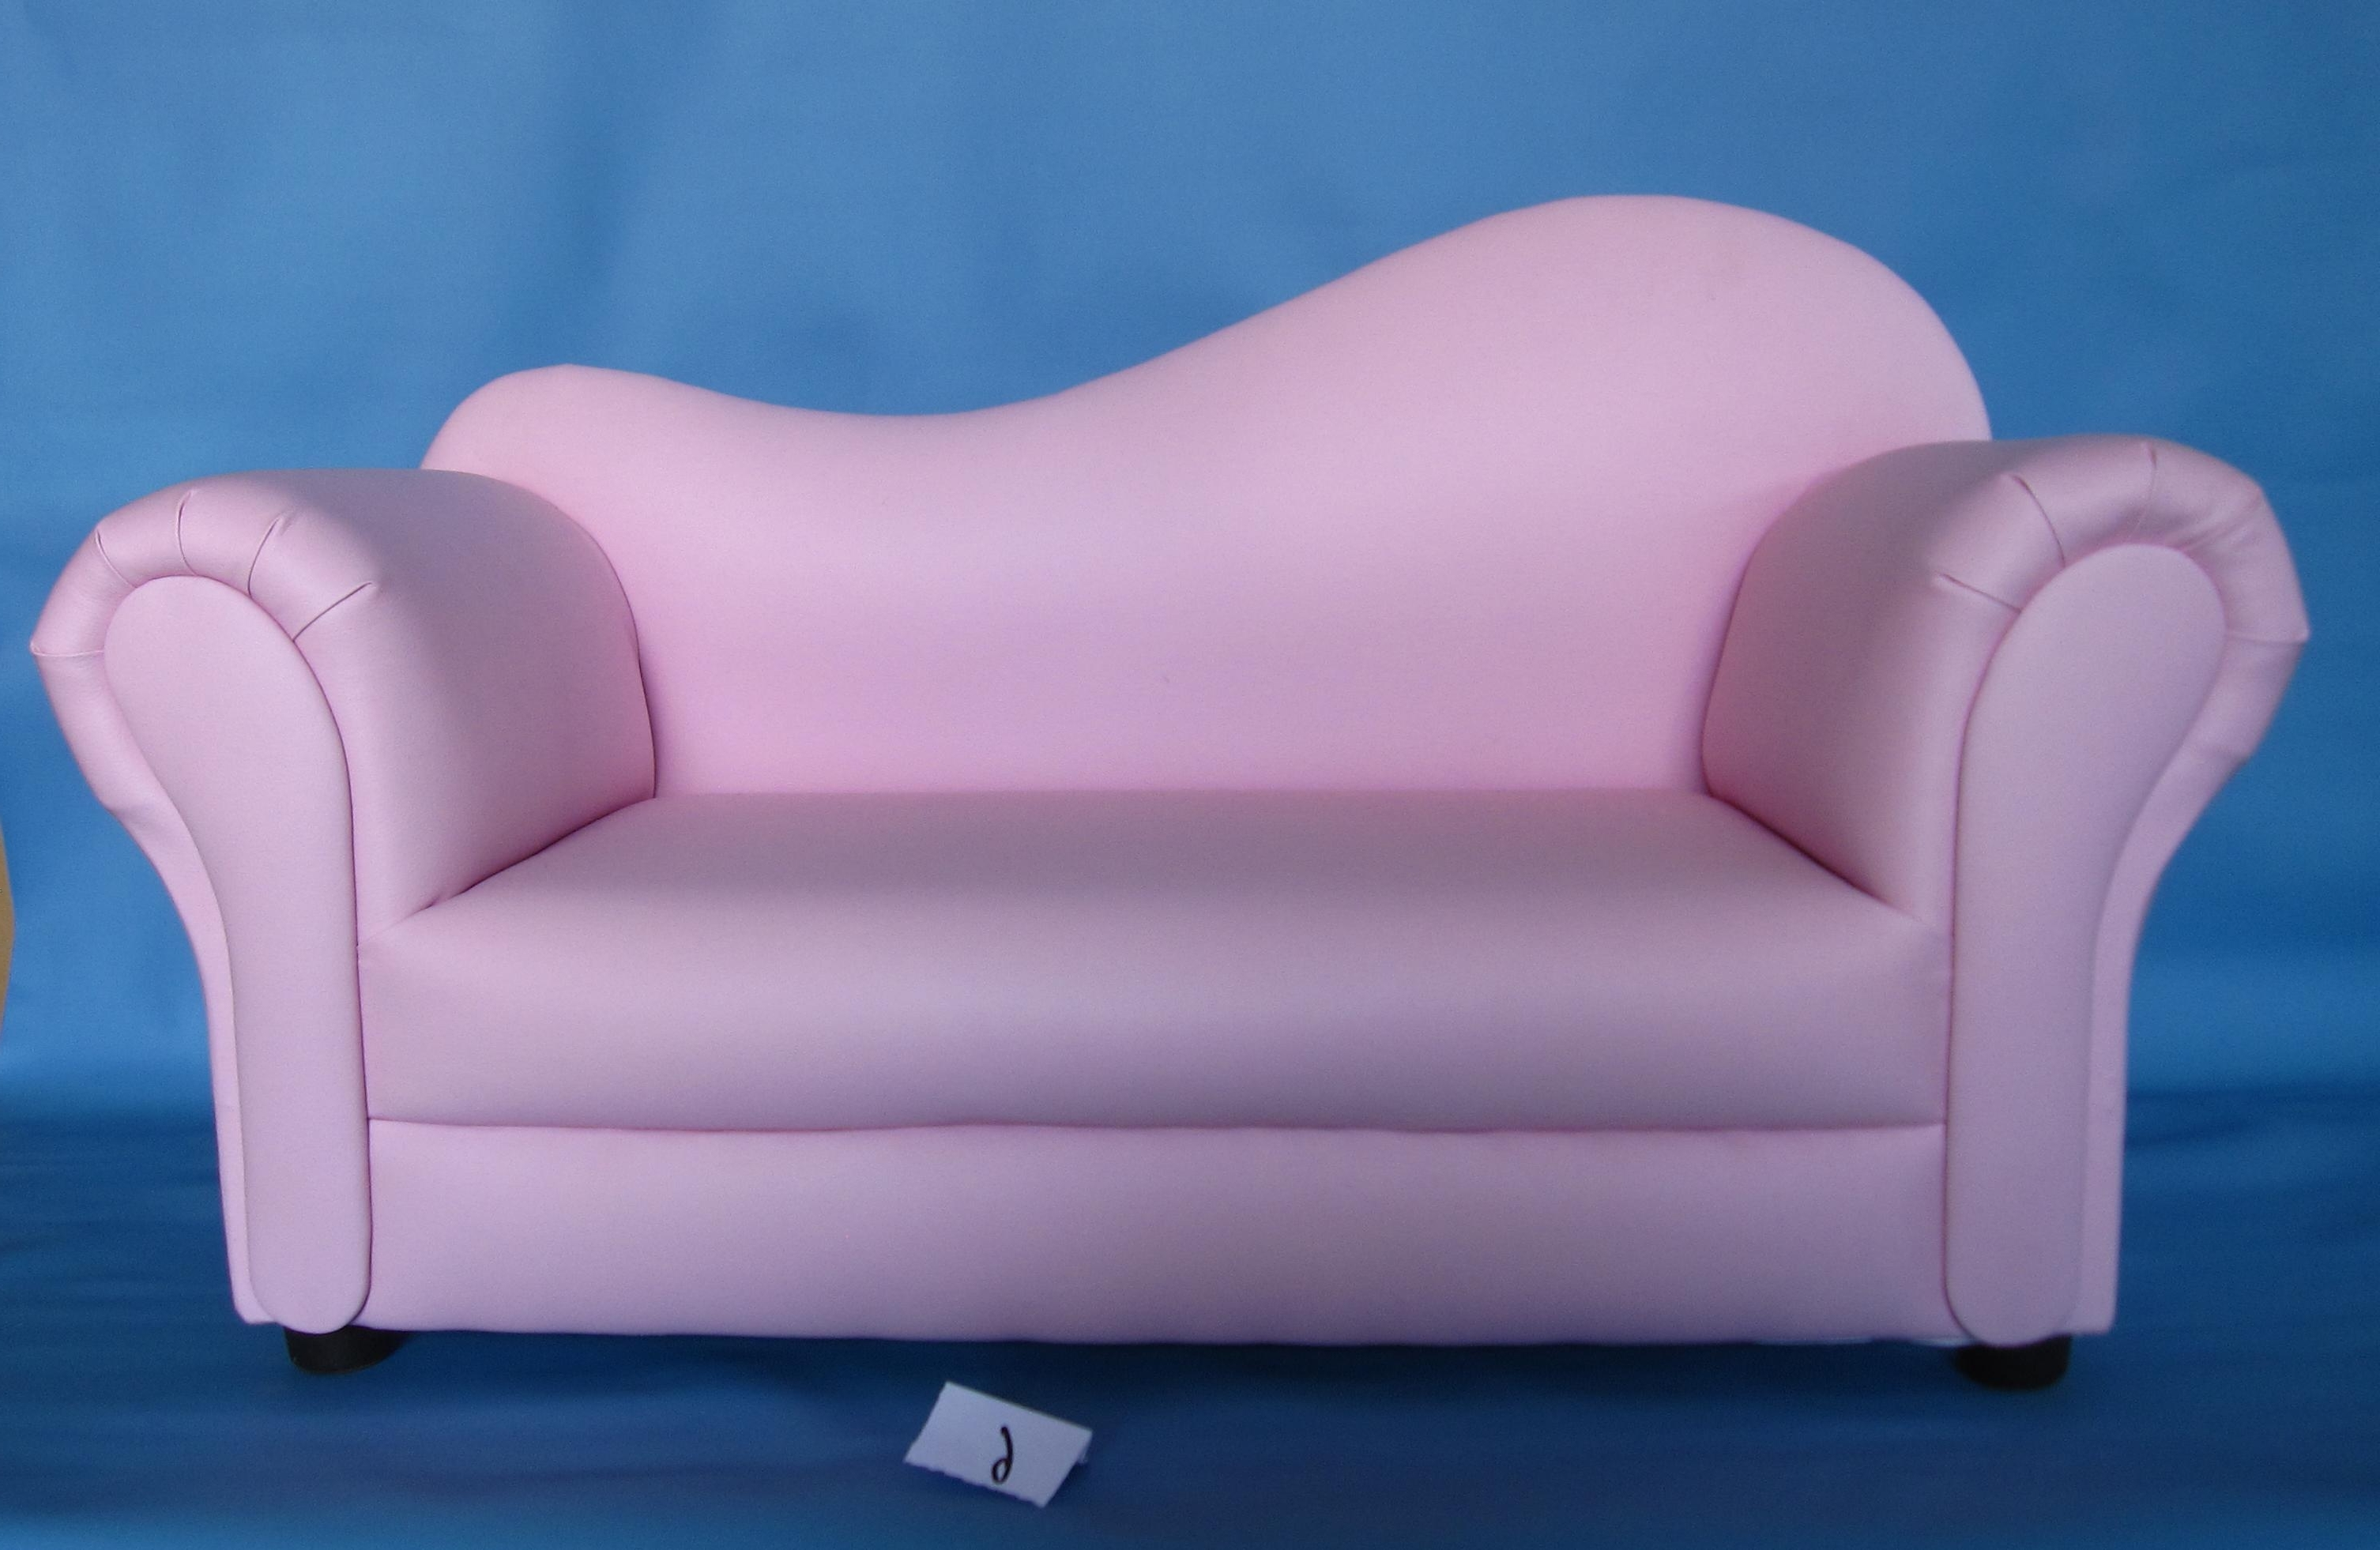 Childrens Sofas With Most Popular Sofa : Sofa Chairs For Children Children's Flip Chair Children's (View 11 of 15)